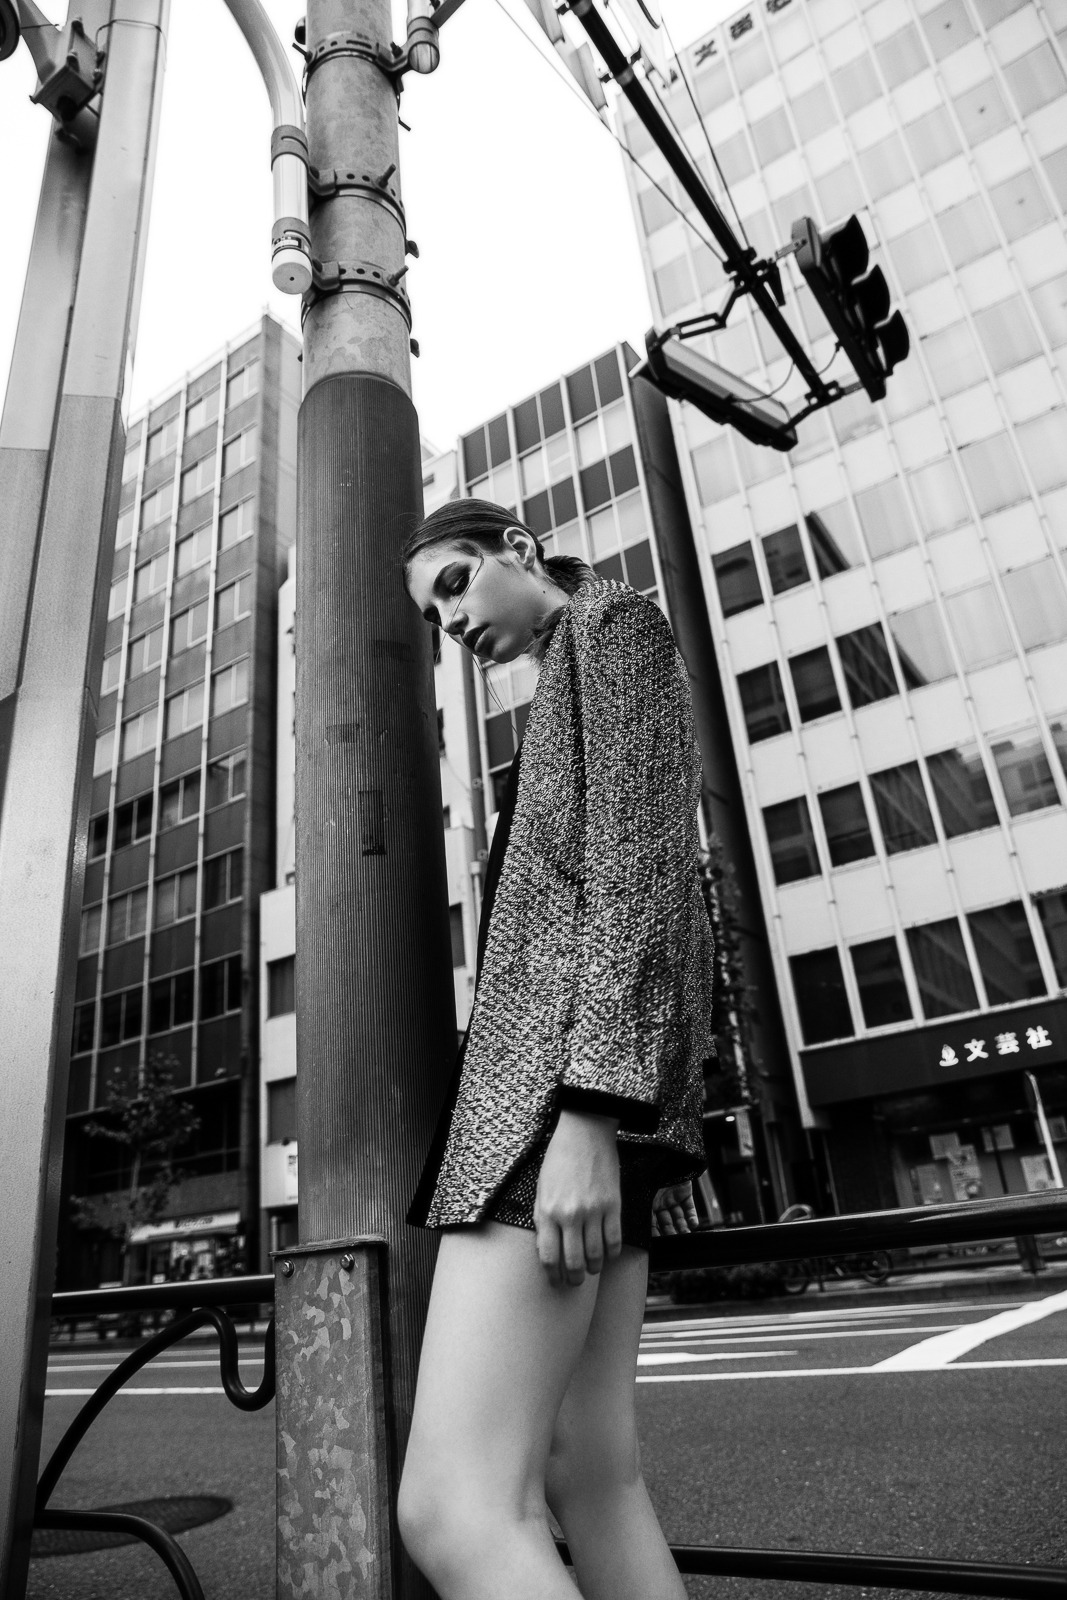 fashion model wearing golden jacket and black skirt walking under a traffic light in tokyo